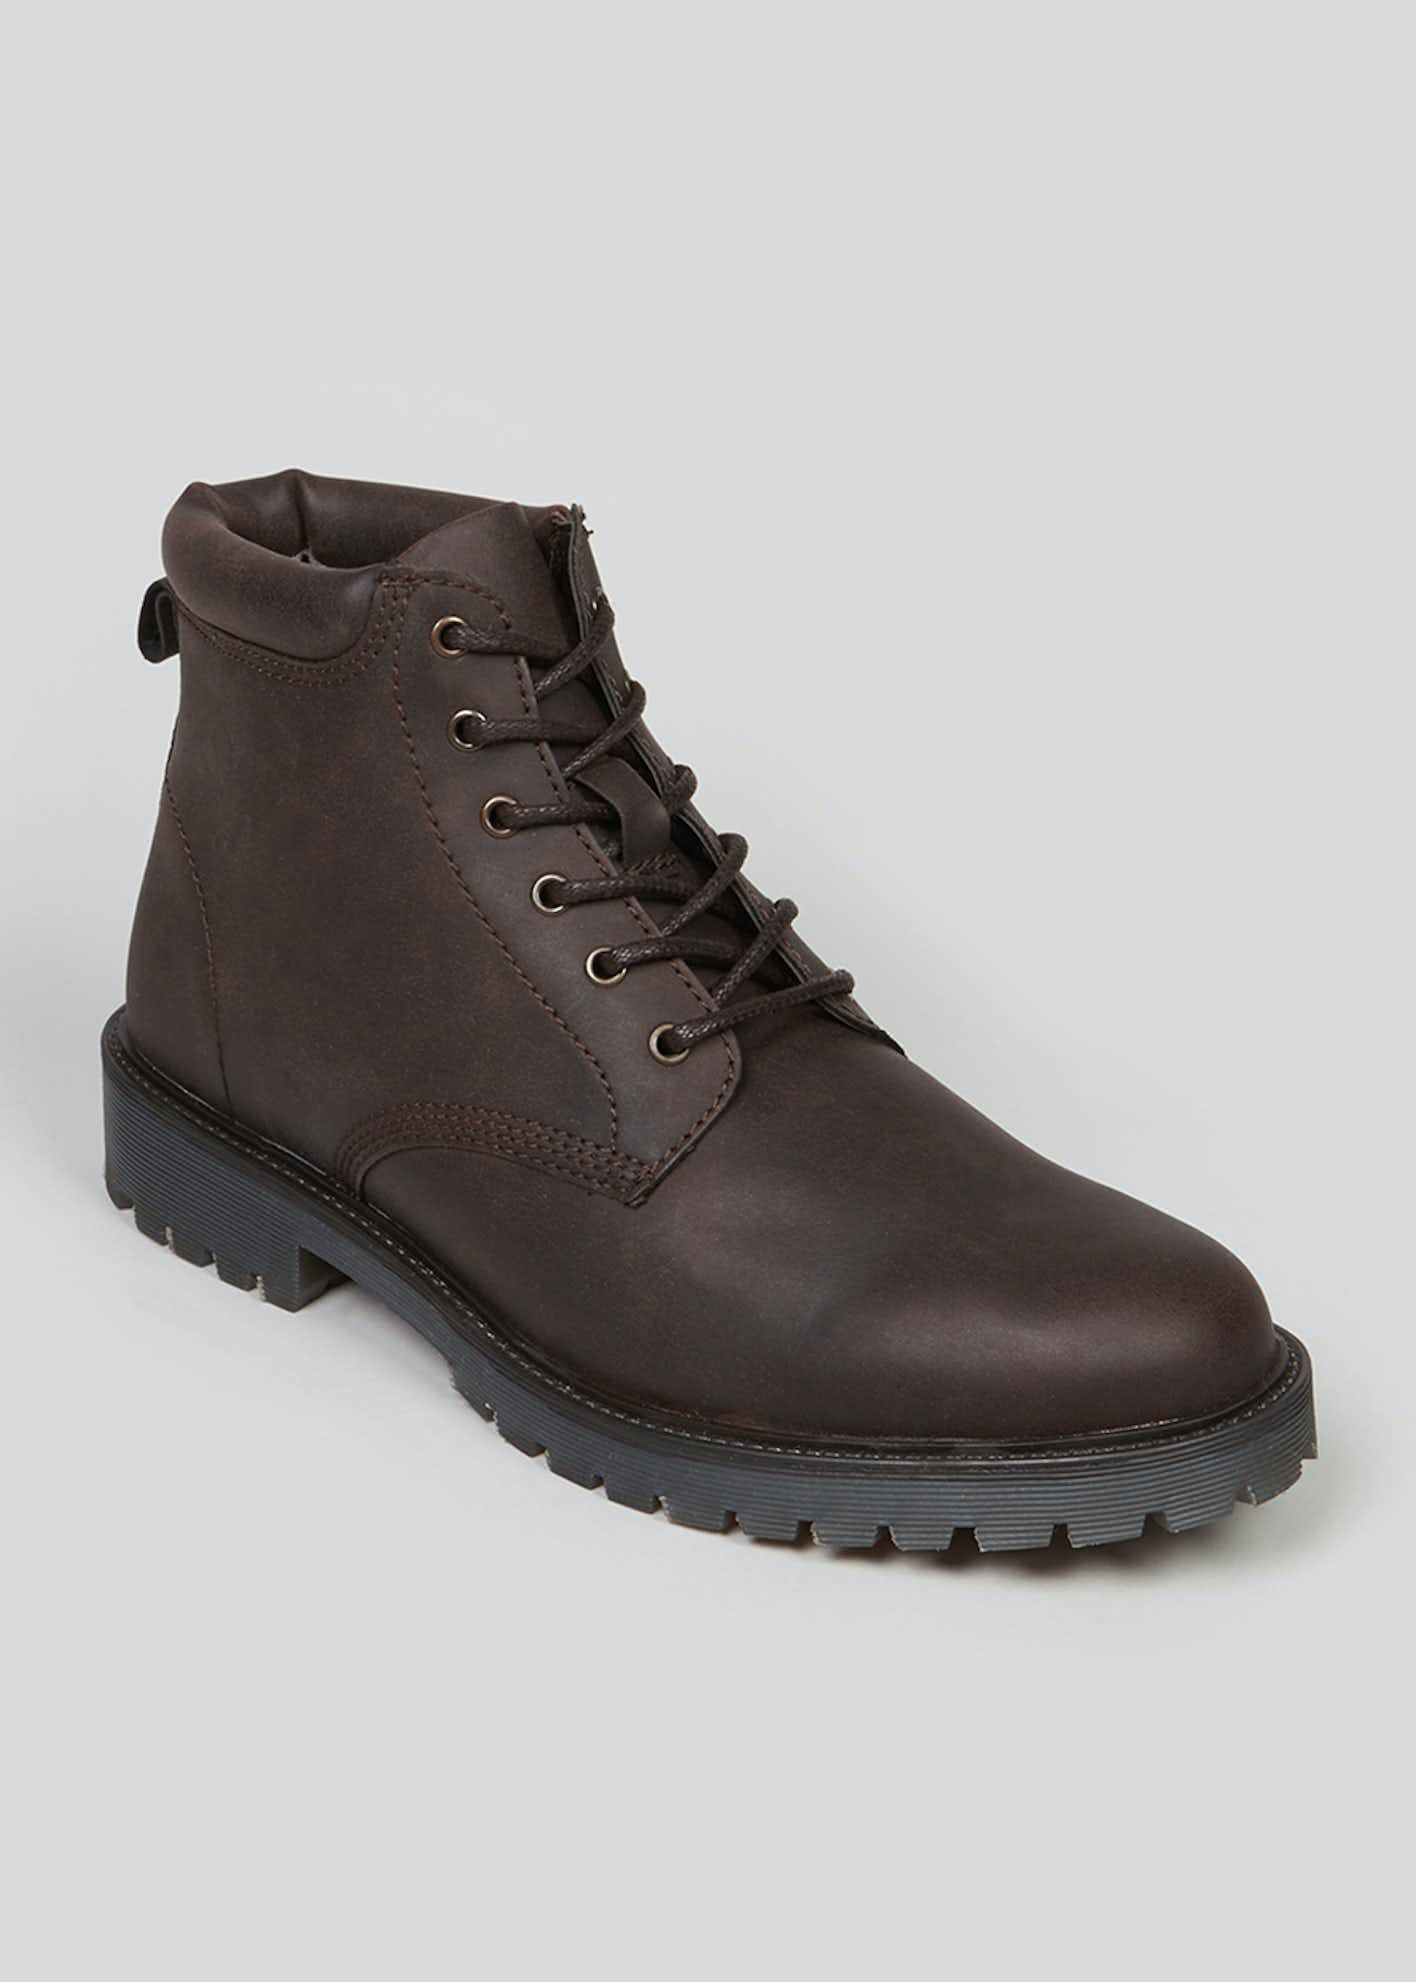 Brown Lace Up Boots